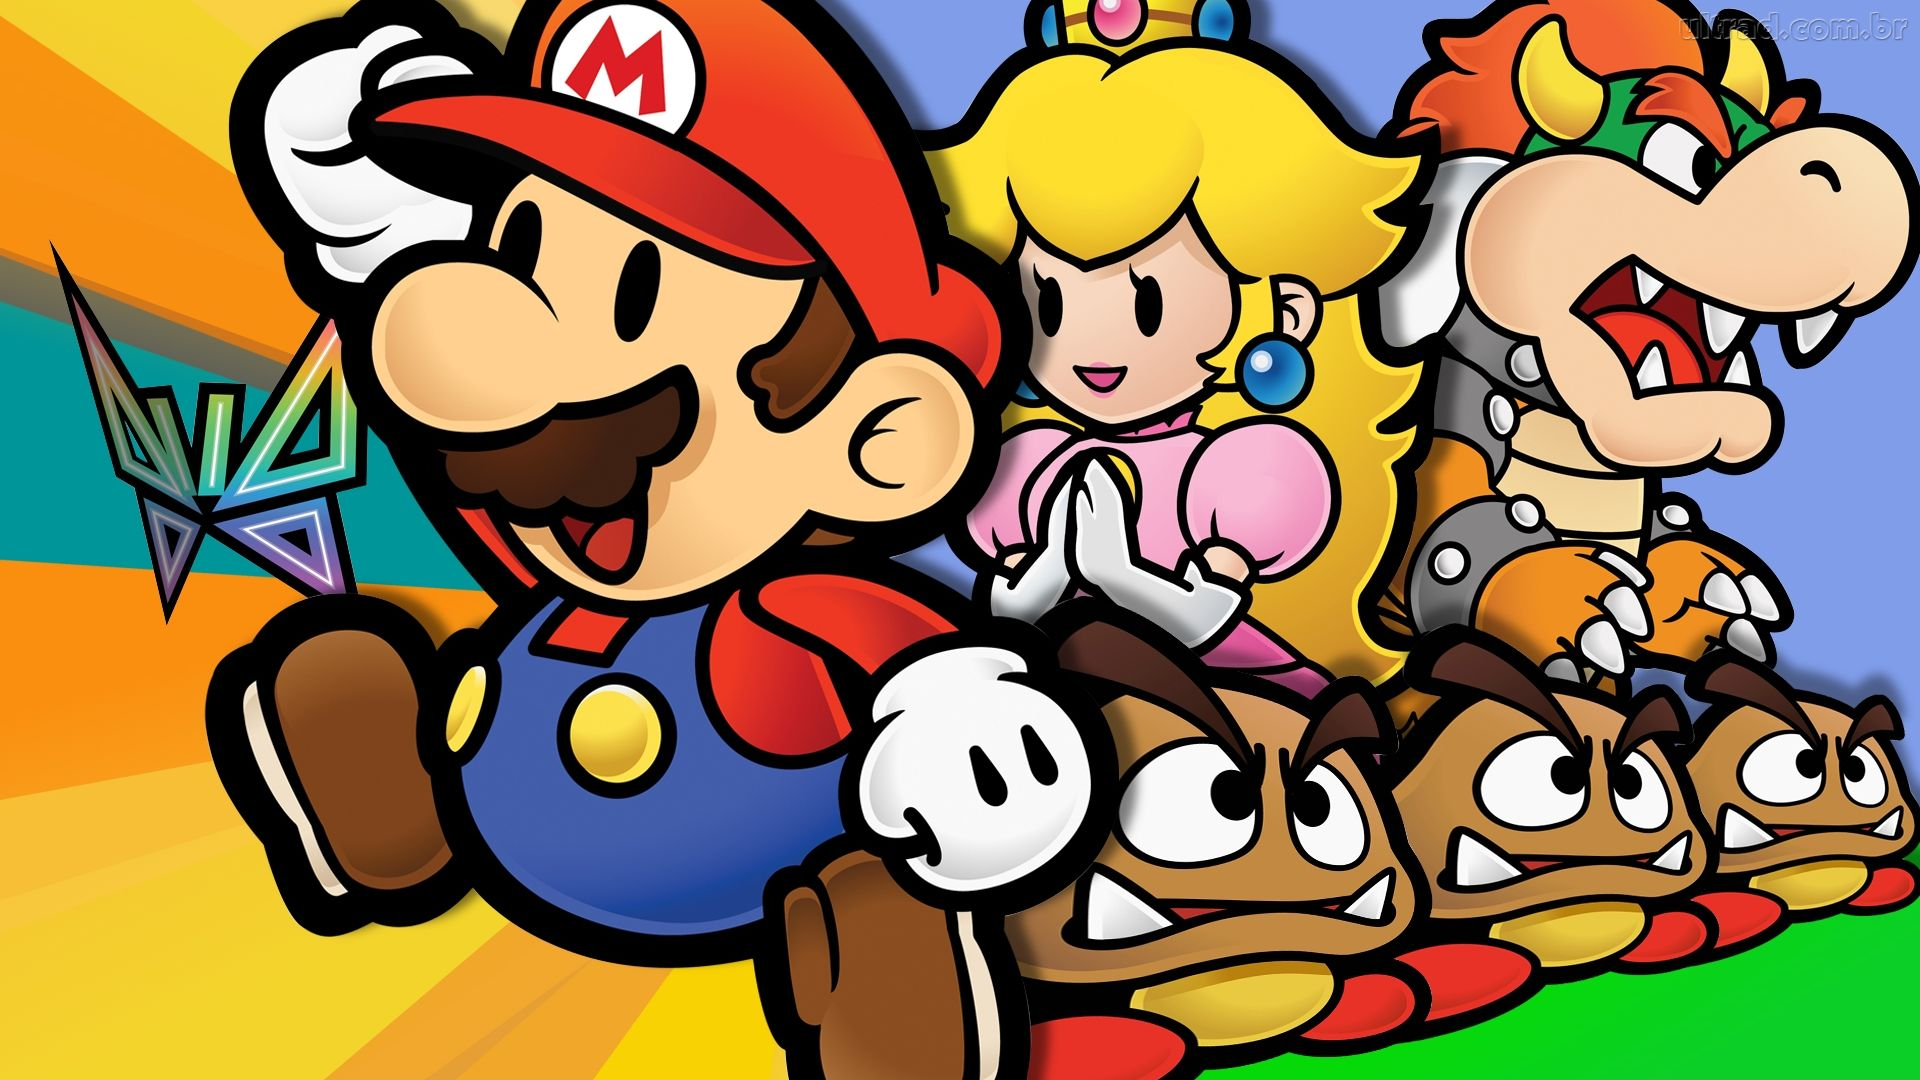 Paper Mario The Thousand Year Door Nintendo Switch Version Full Game Free Download